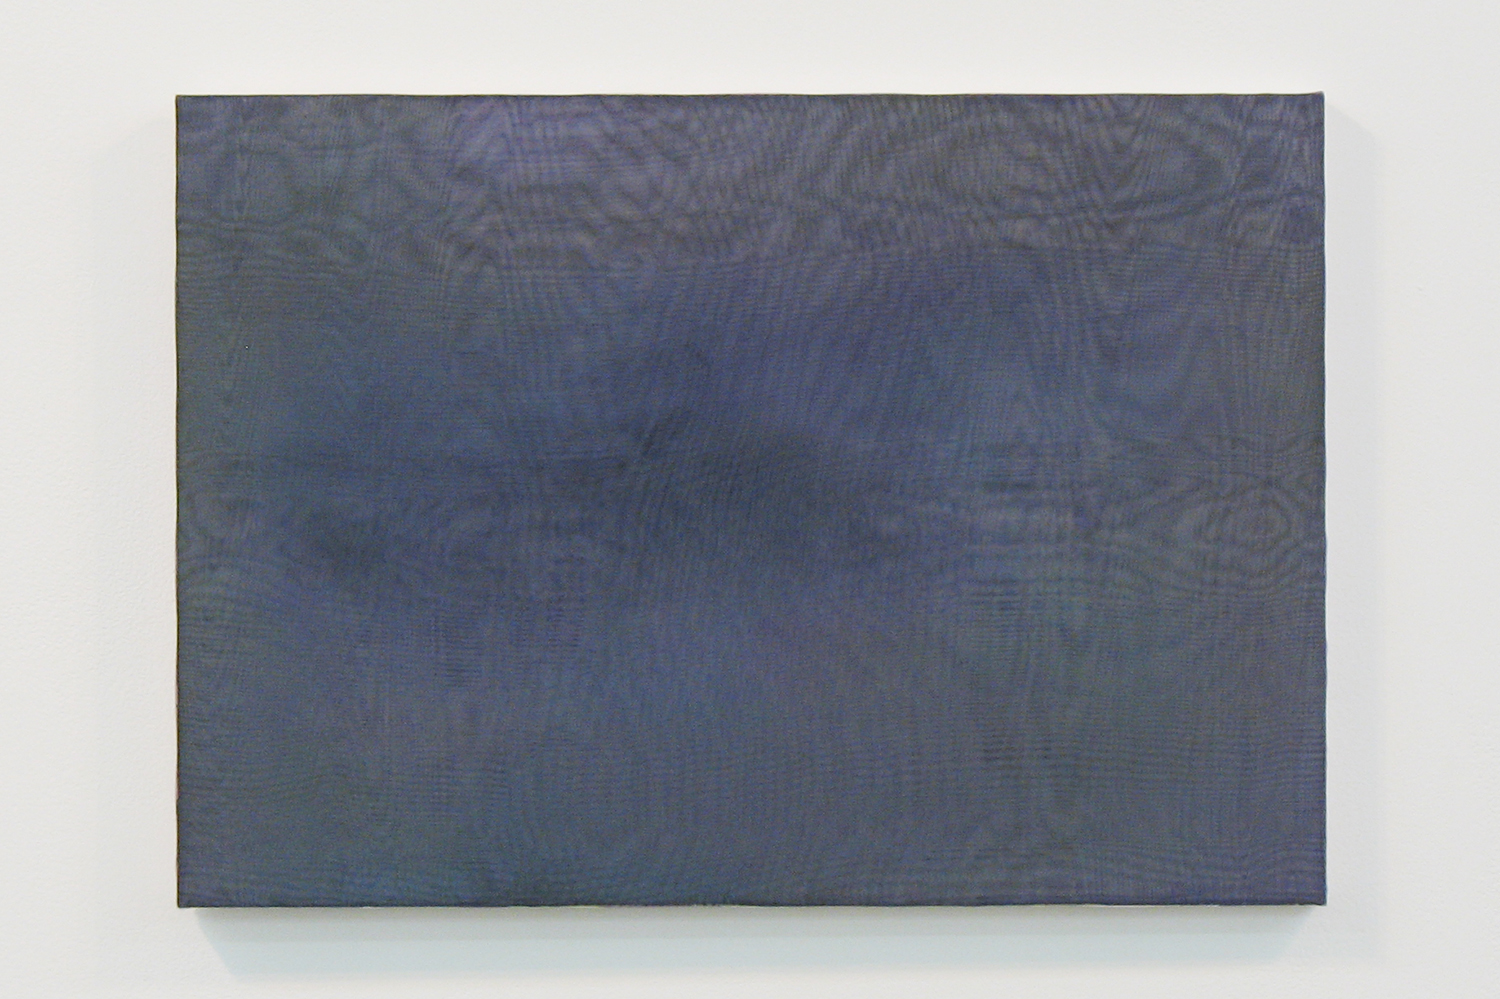 中空 0907 (hollowness 0907)|panel, stainless steel sheet, glass organdy, acrylic|363  x 515 mm|2009